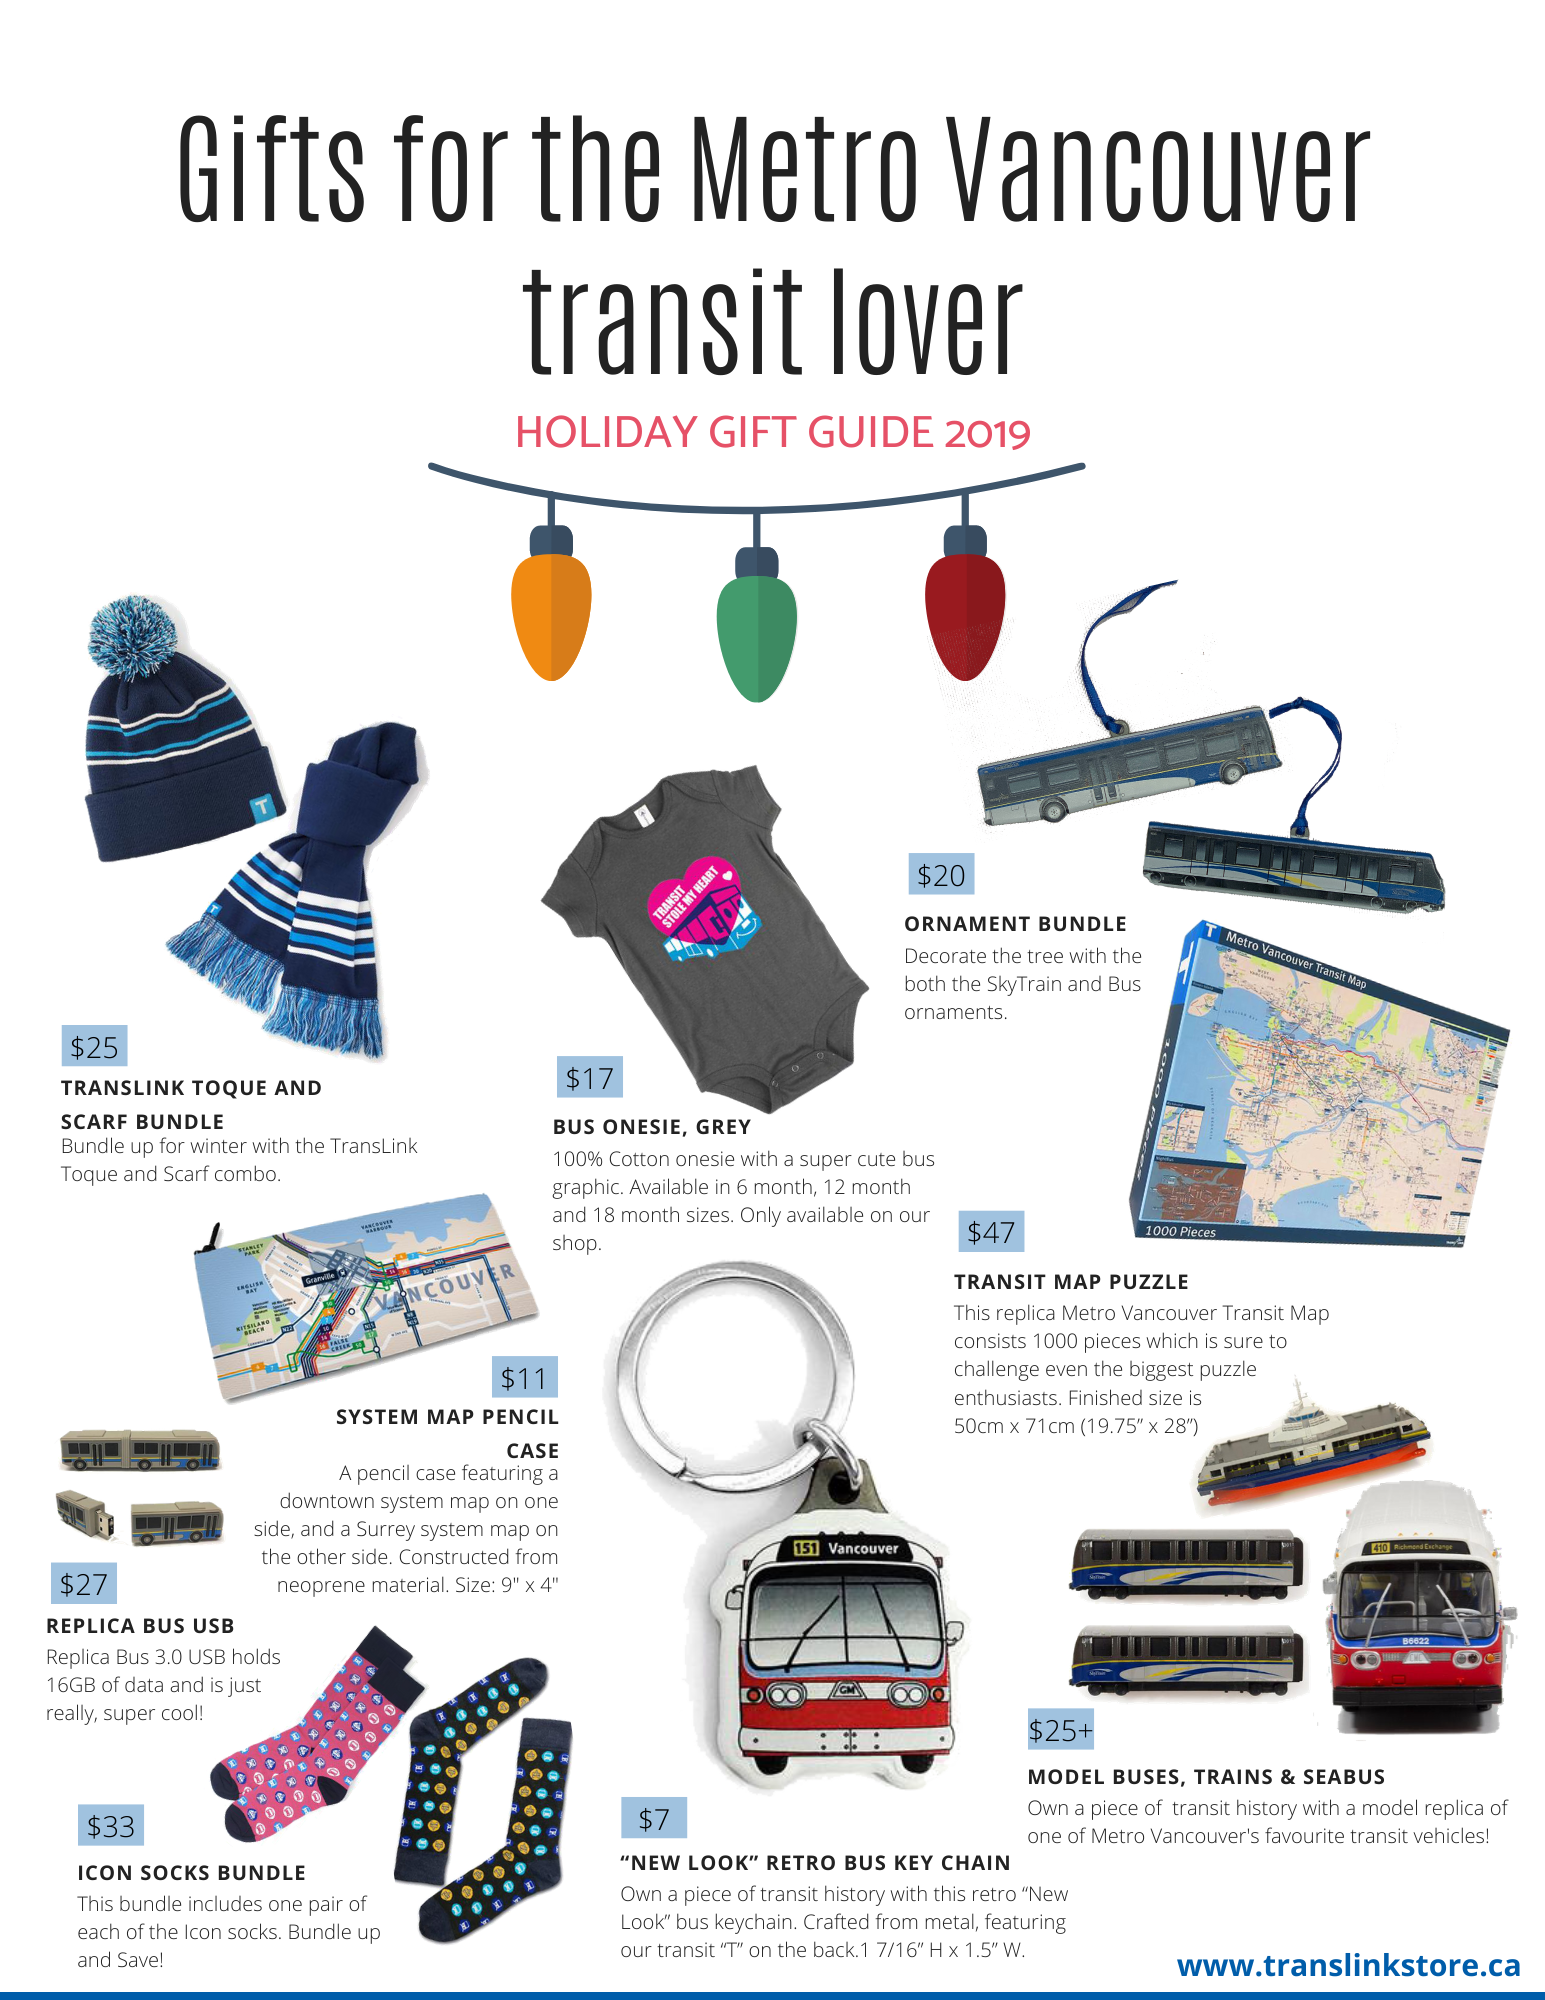 Holiday Gift Guide 2019 - Gifts for the Metro Vancouver transit lover